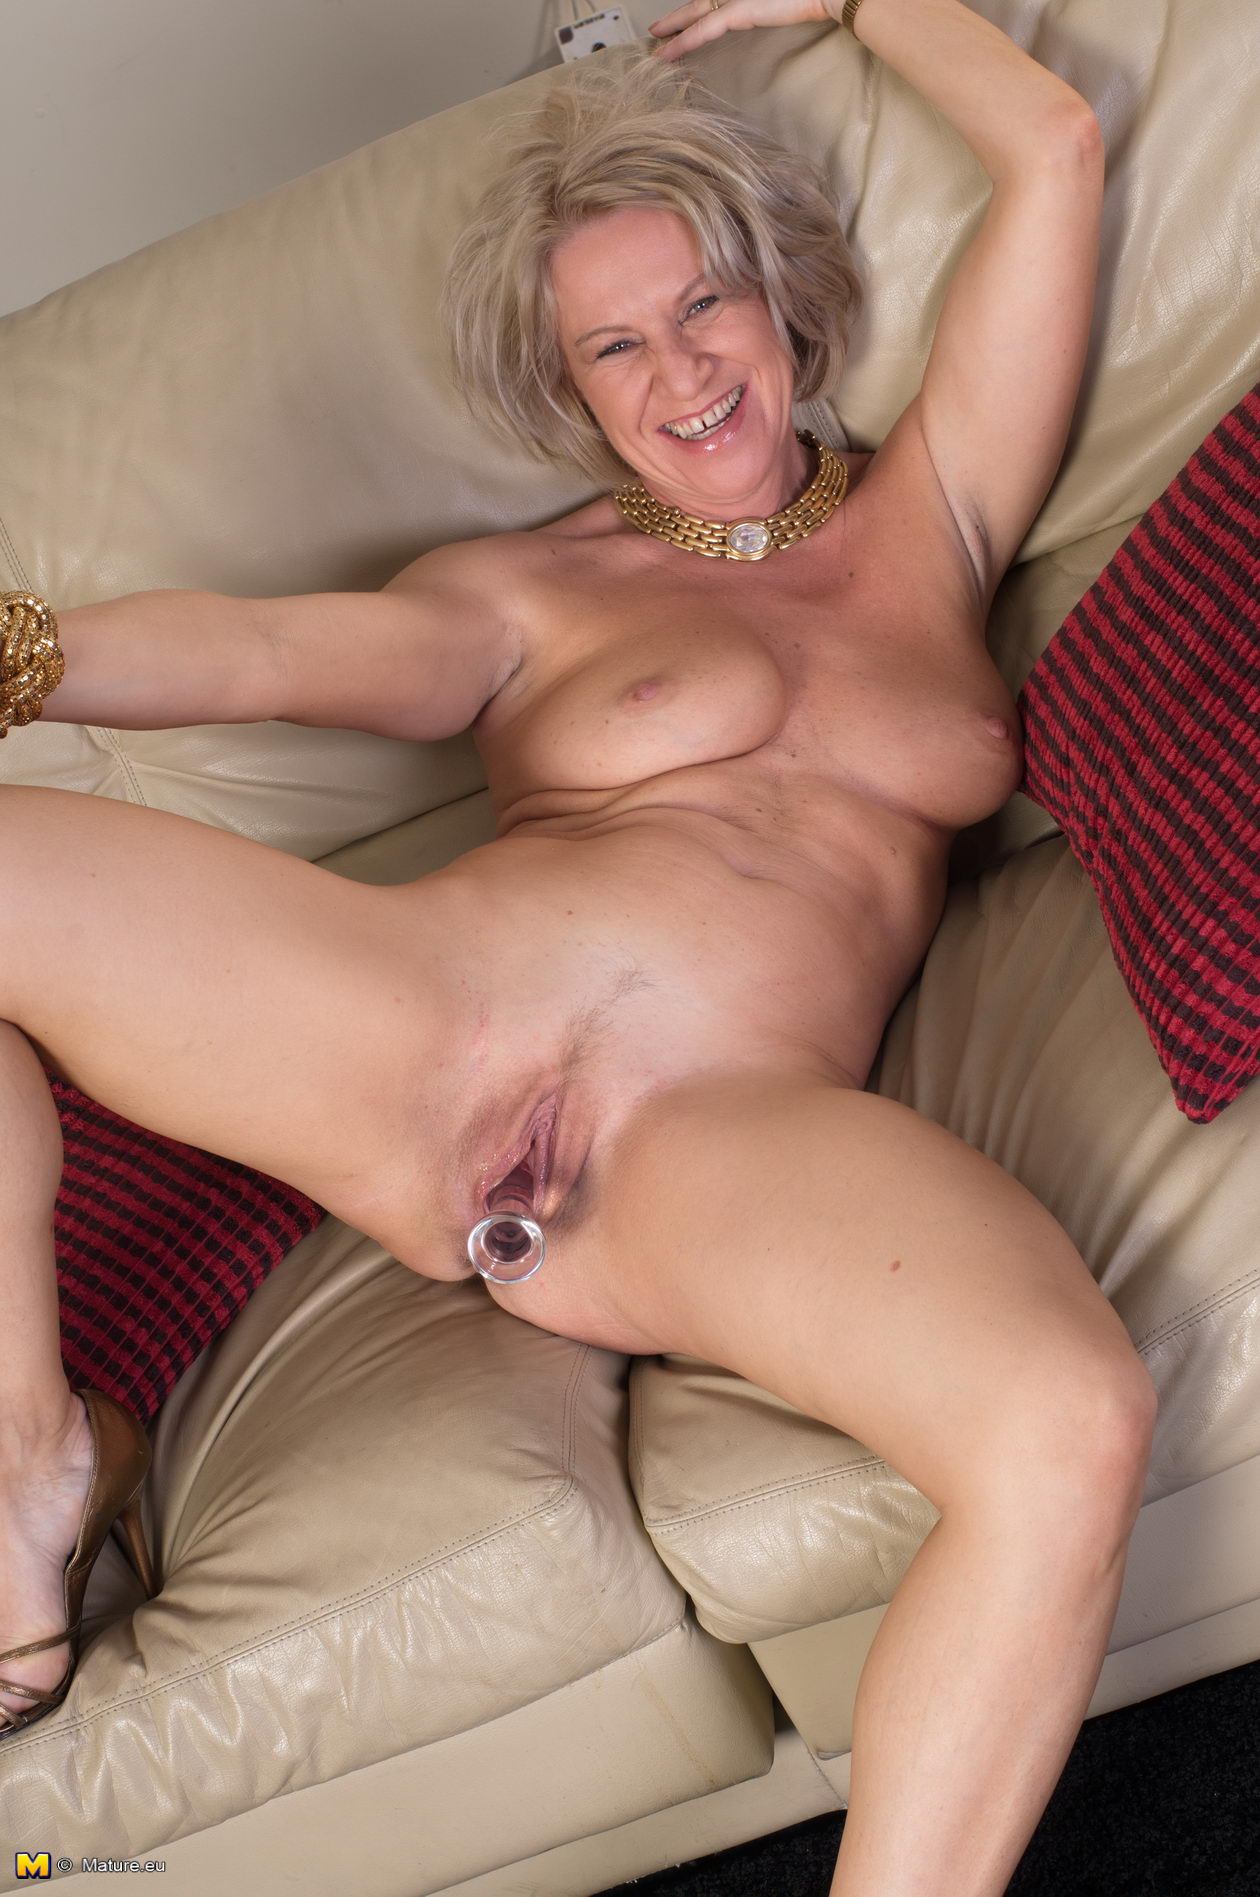 Free older women xxx pic jennifer welles